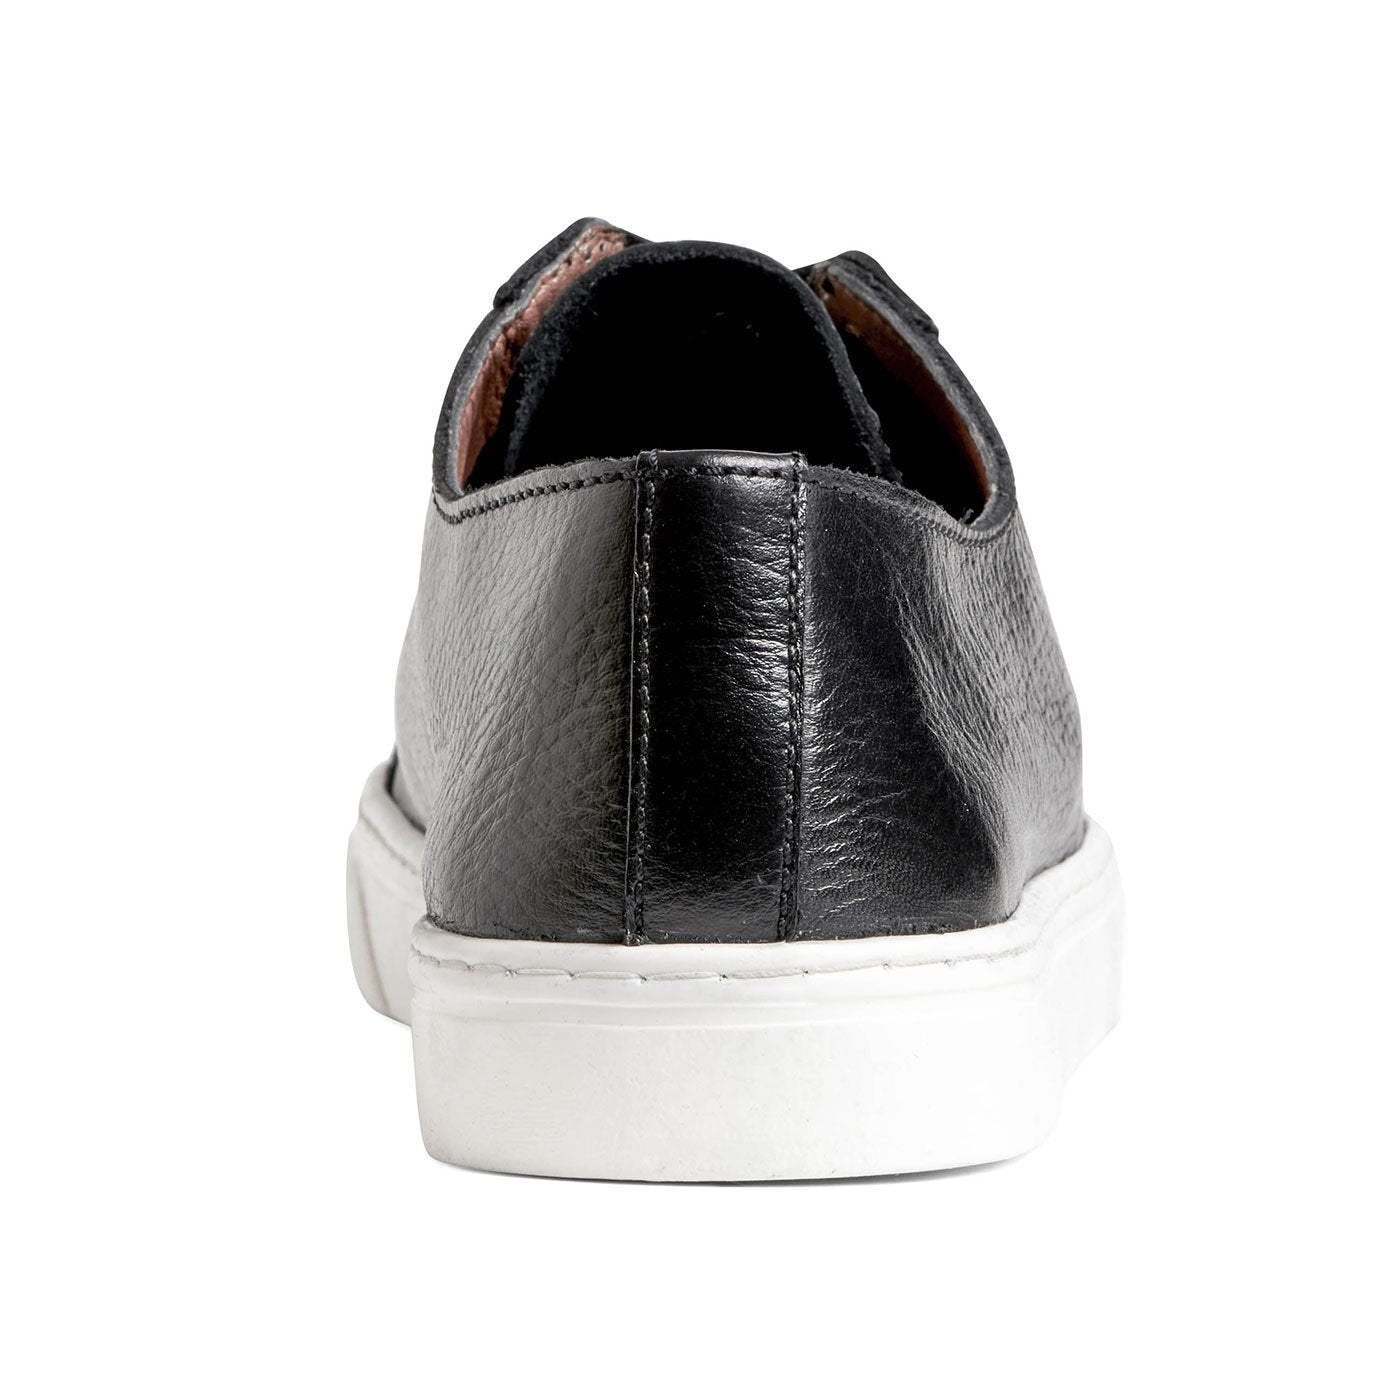 Coolidge Tennis Sneaker Black